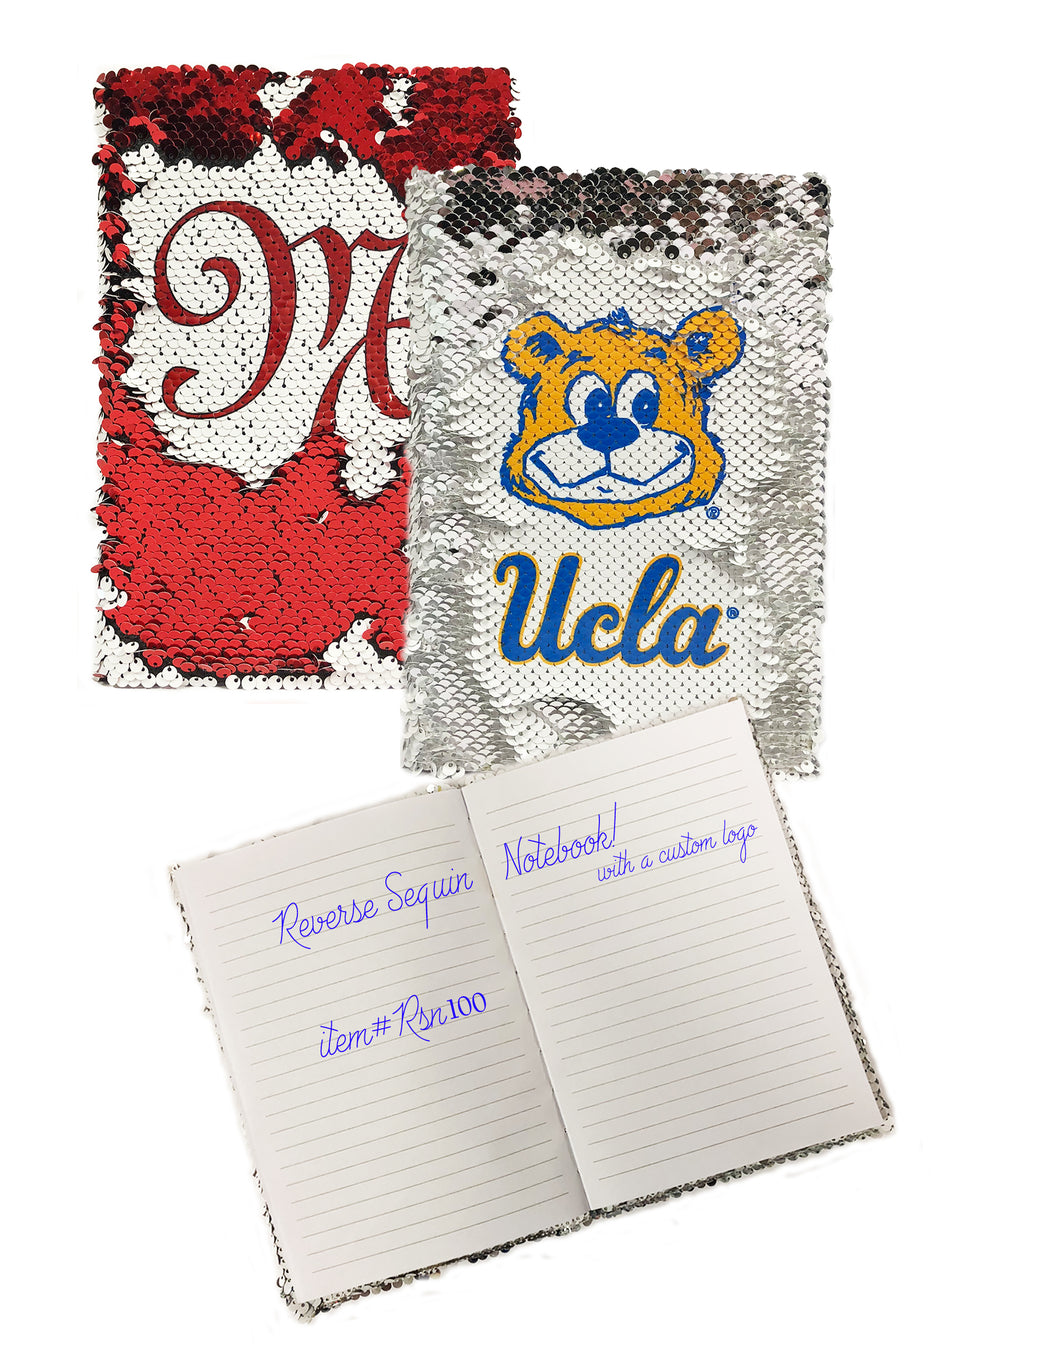 Sequin Notebook/Journal